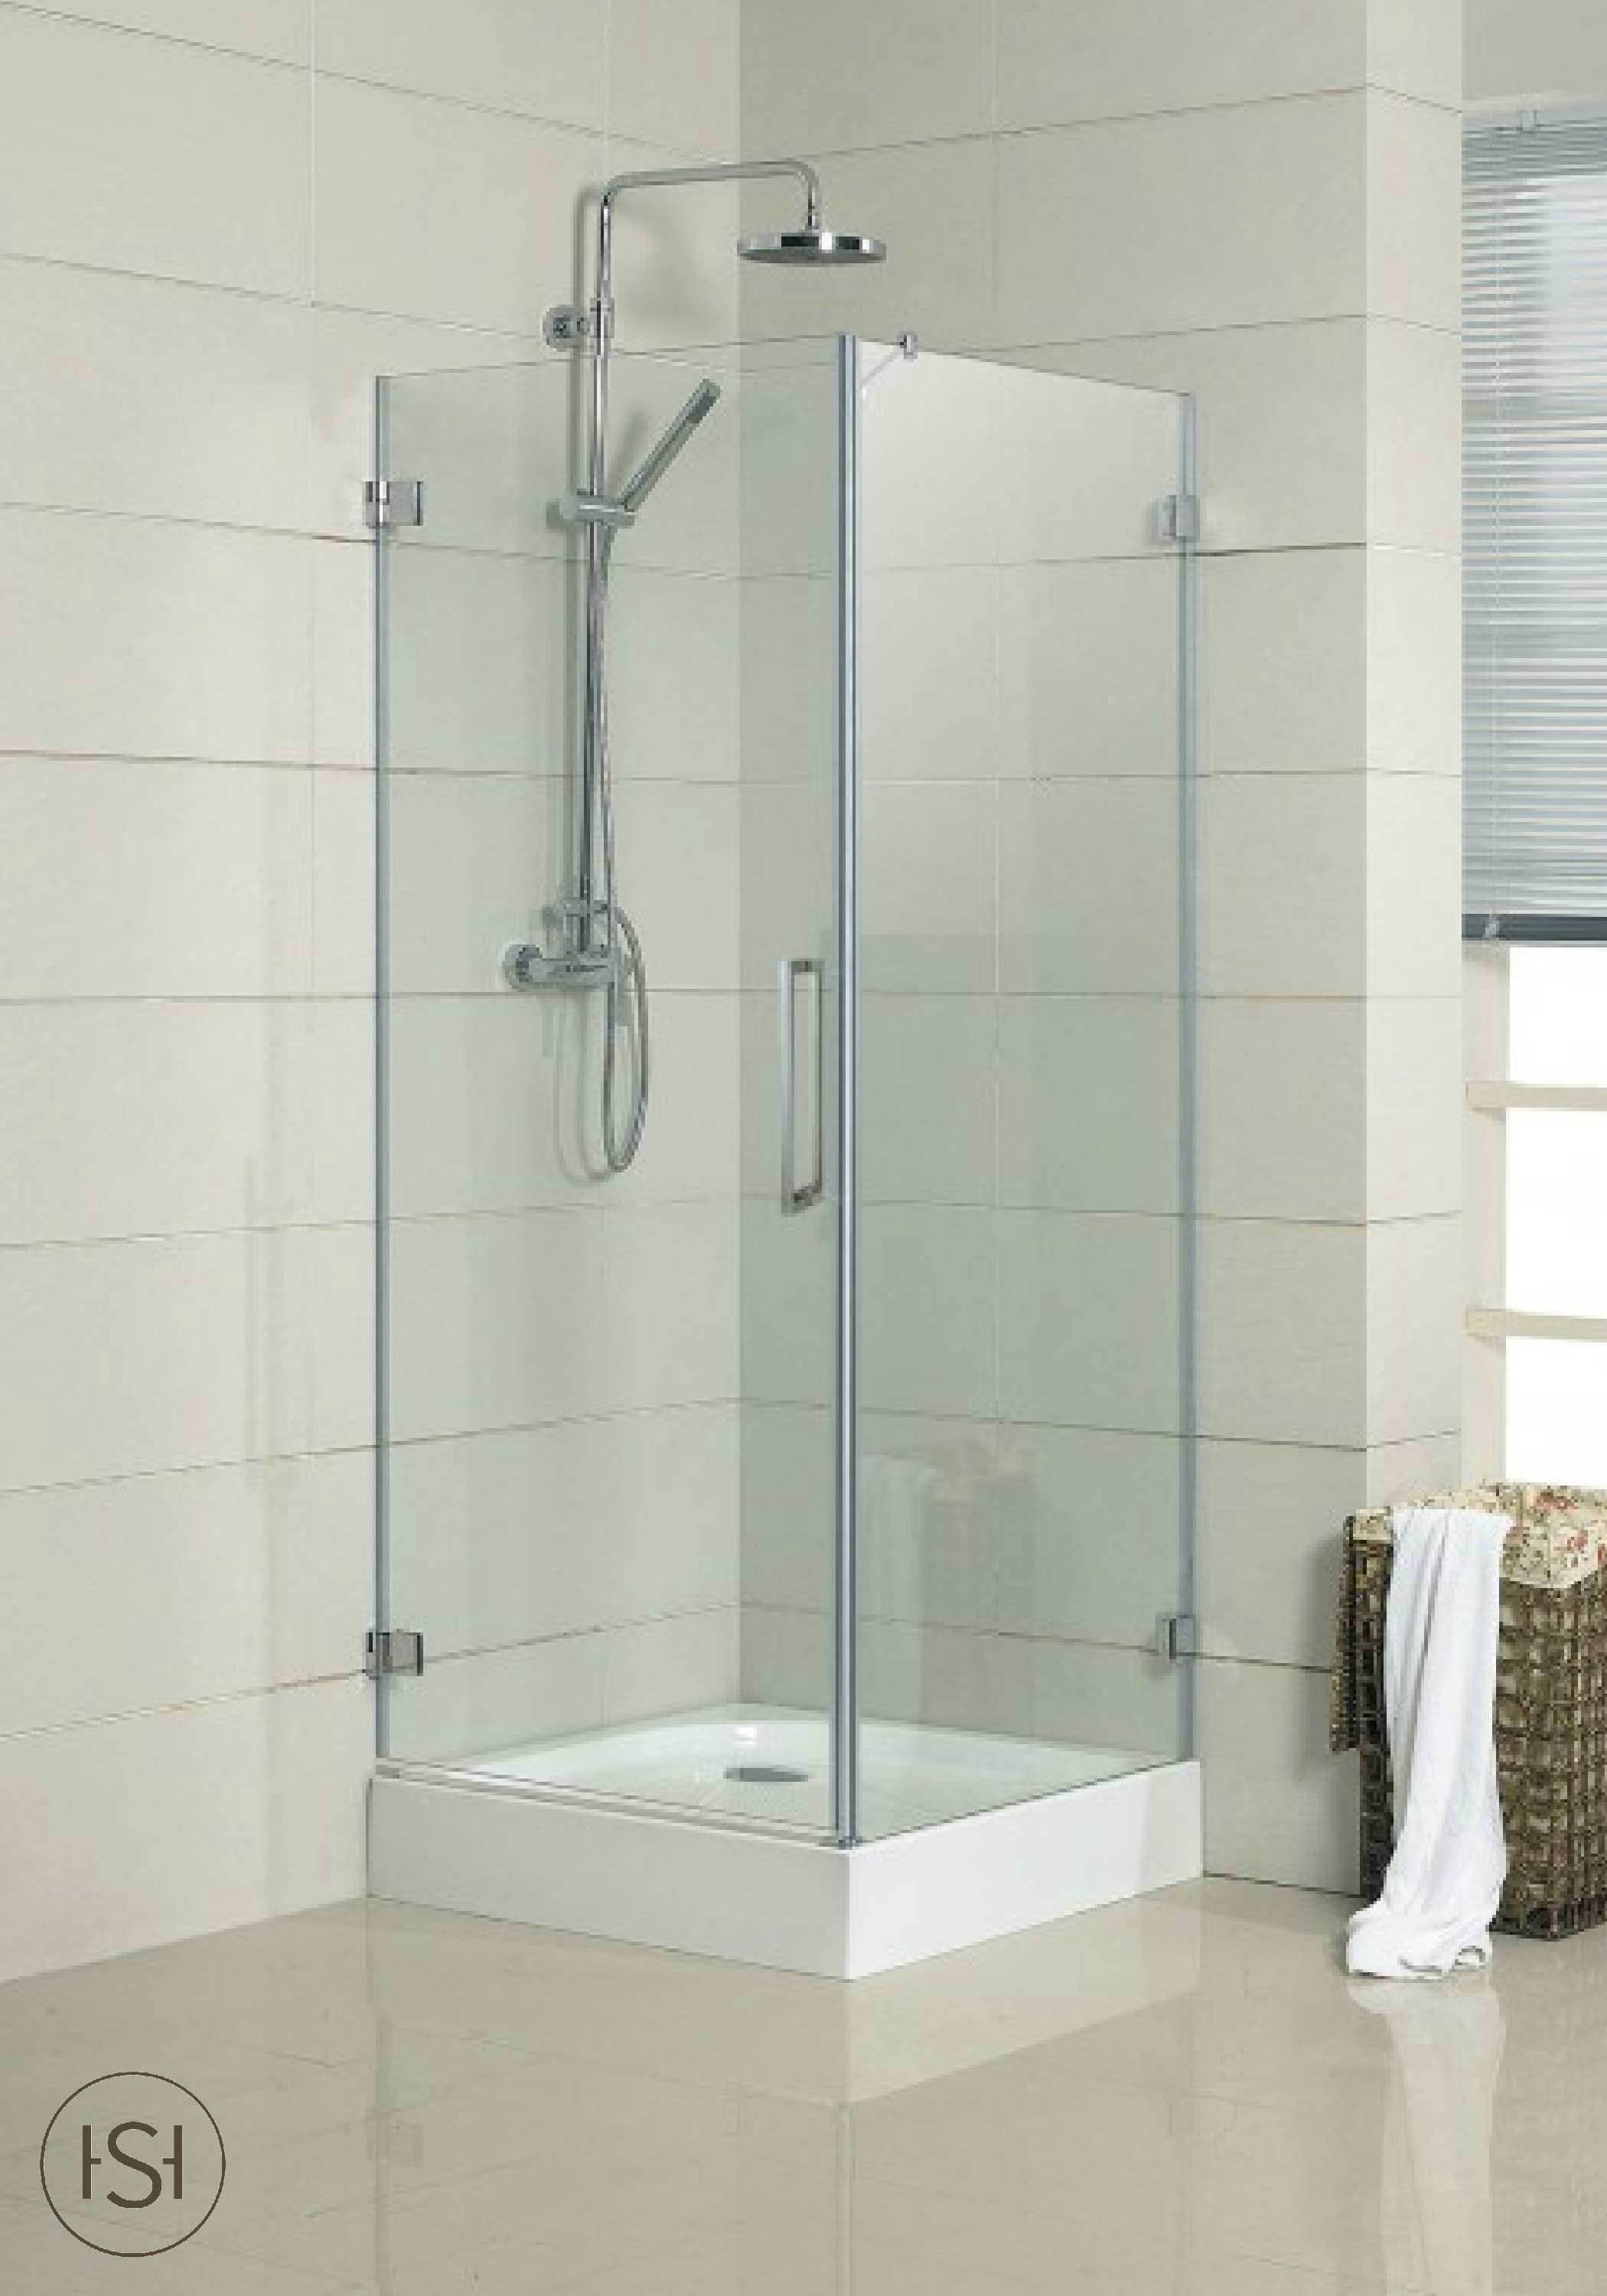 Remodeling Your Ensuite Master Bathroom The Light And Airy Design Of This Sleek Shower Enclosure Will Add Style To 5 Piece Bath